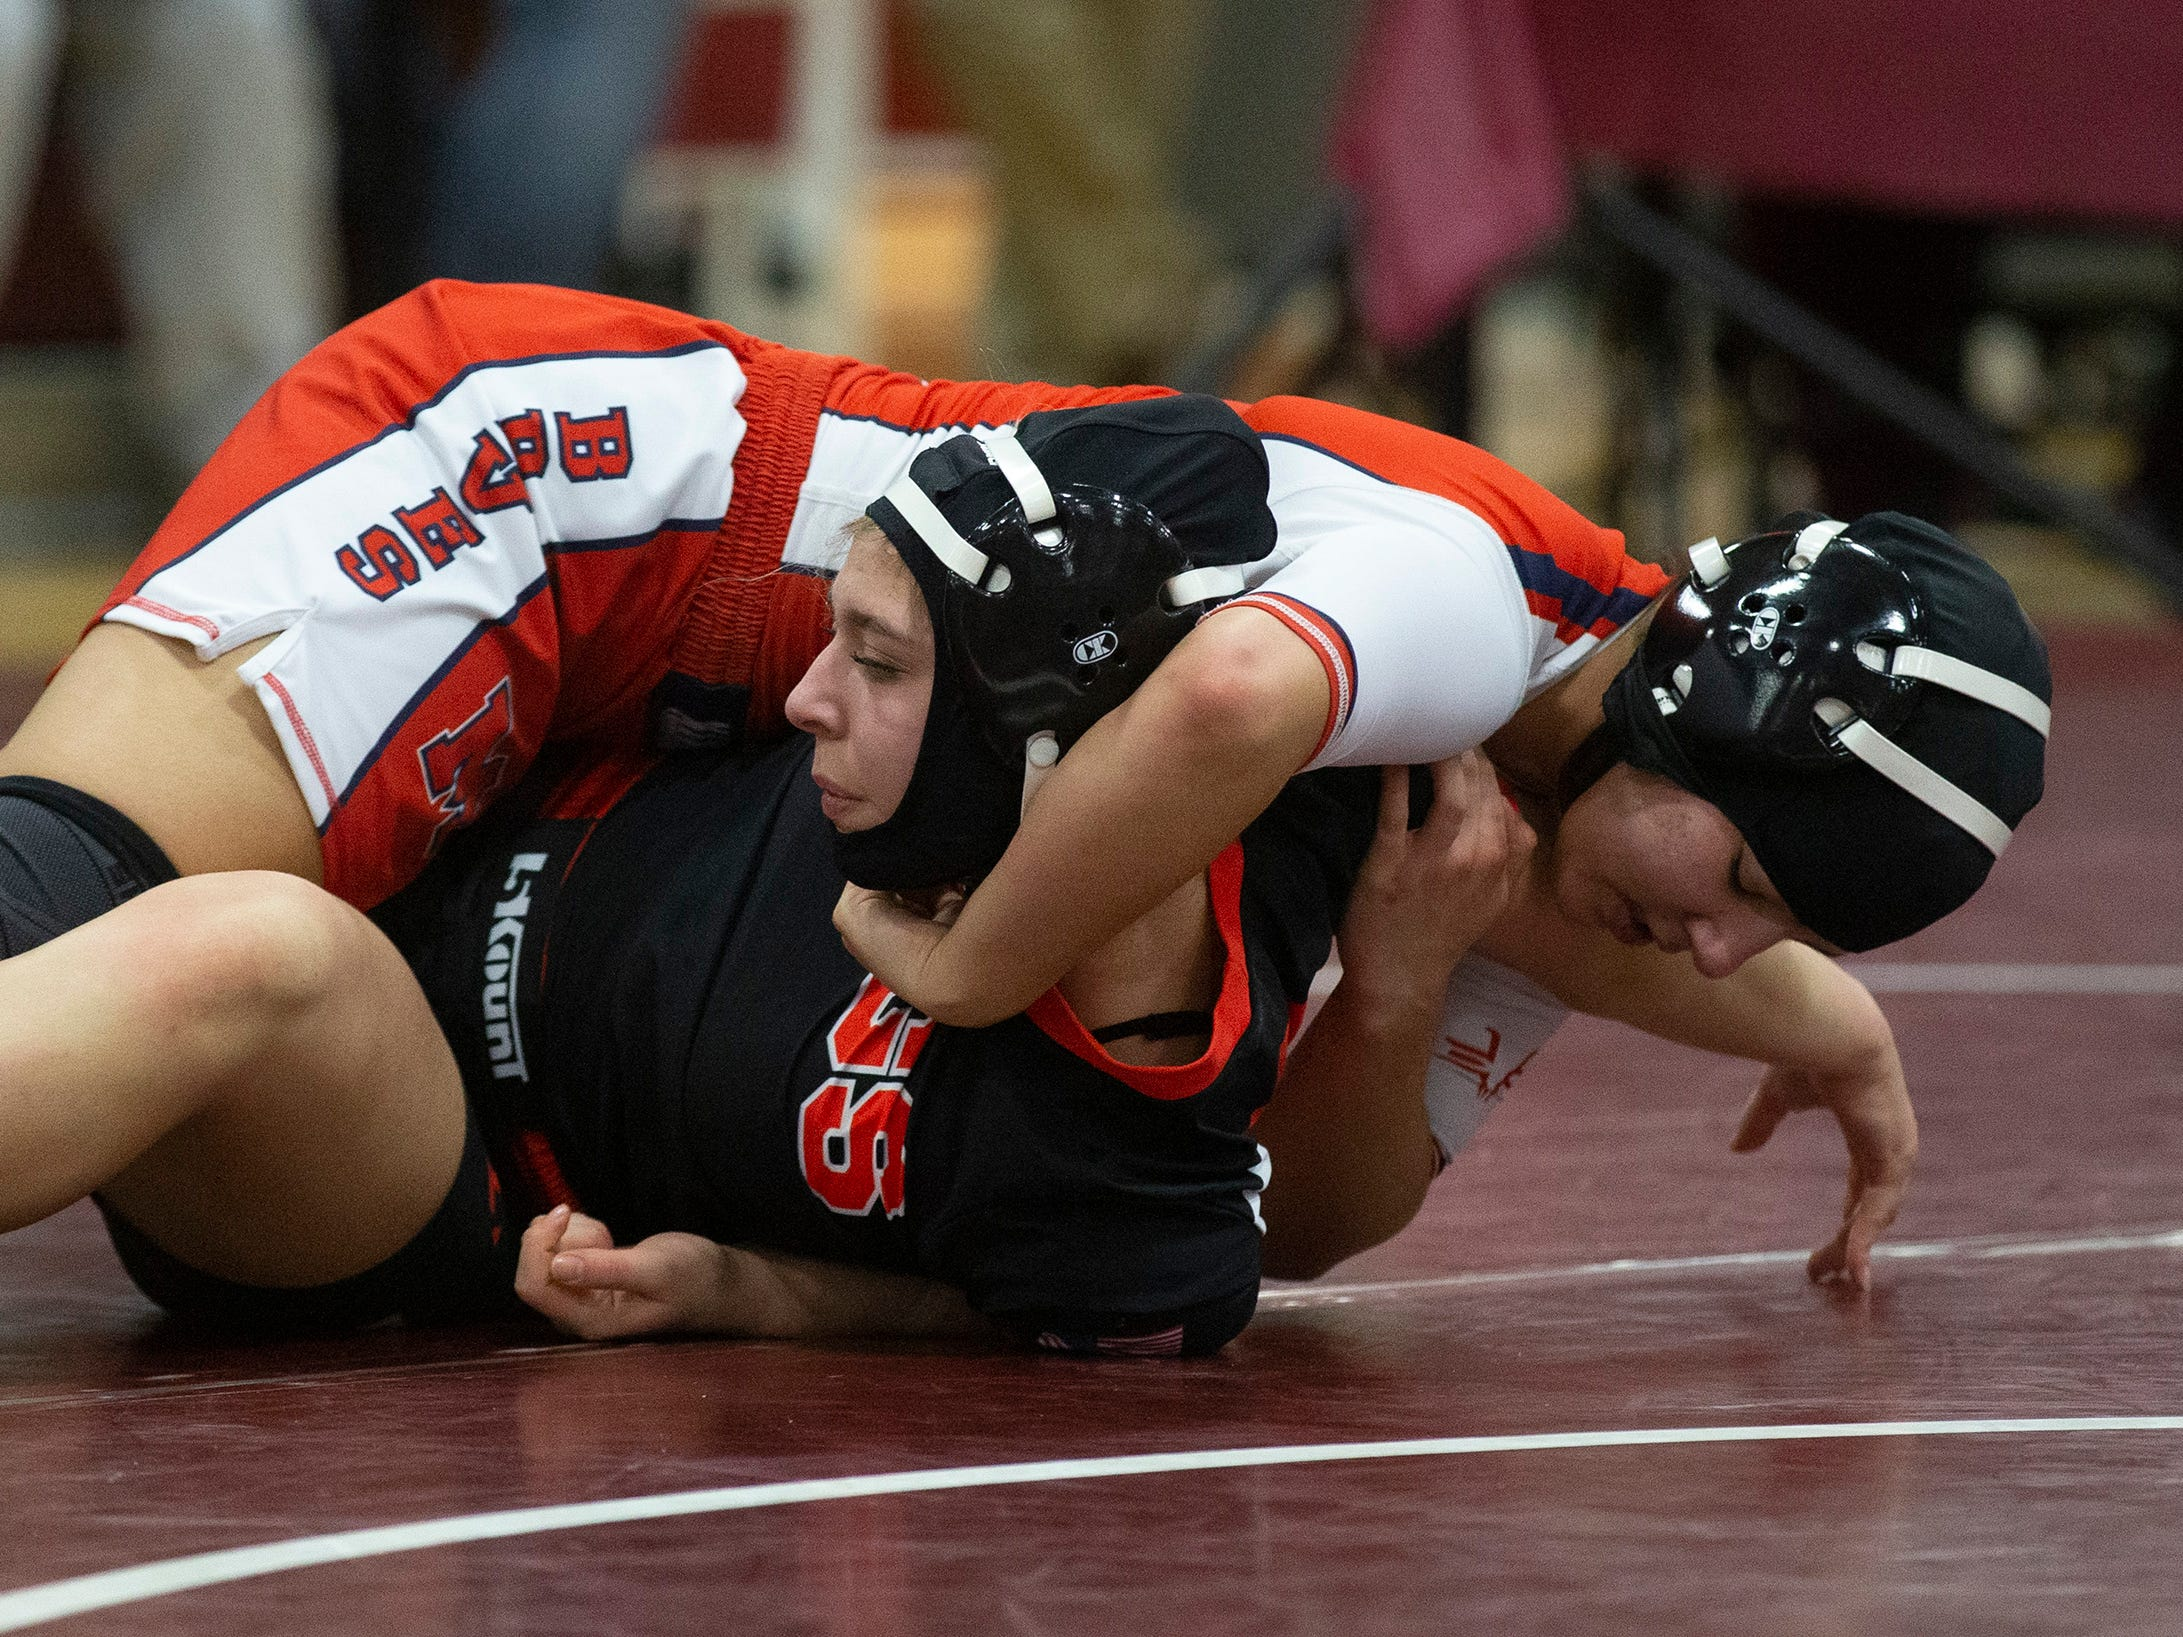 Manalapan's Angelina Vitola works for back points against Jackson Memorial's Kayla Gregory in their 127 lbs. bout. NJSIAA Girls Region Wrestling at Red Bank Regional High School in Red Bank NJ on February 17, 2019.